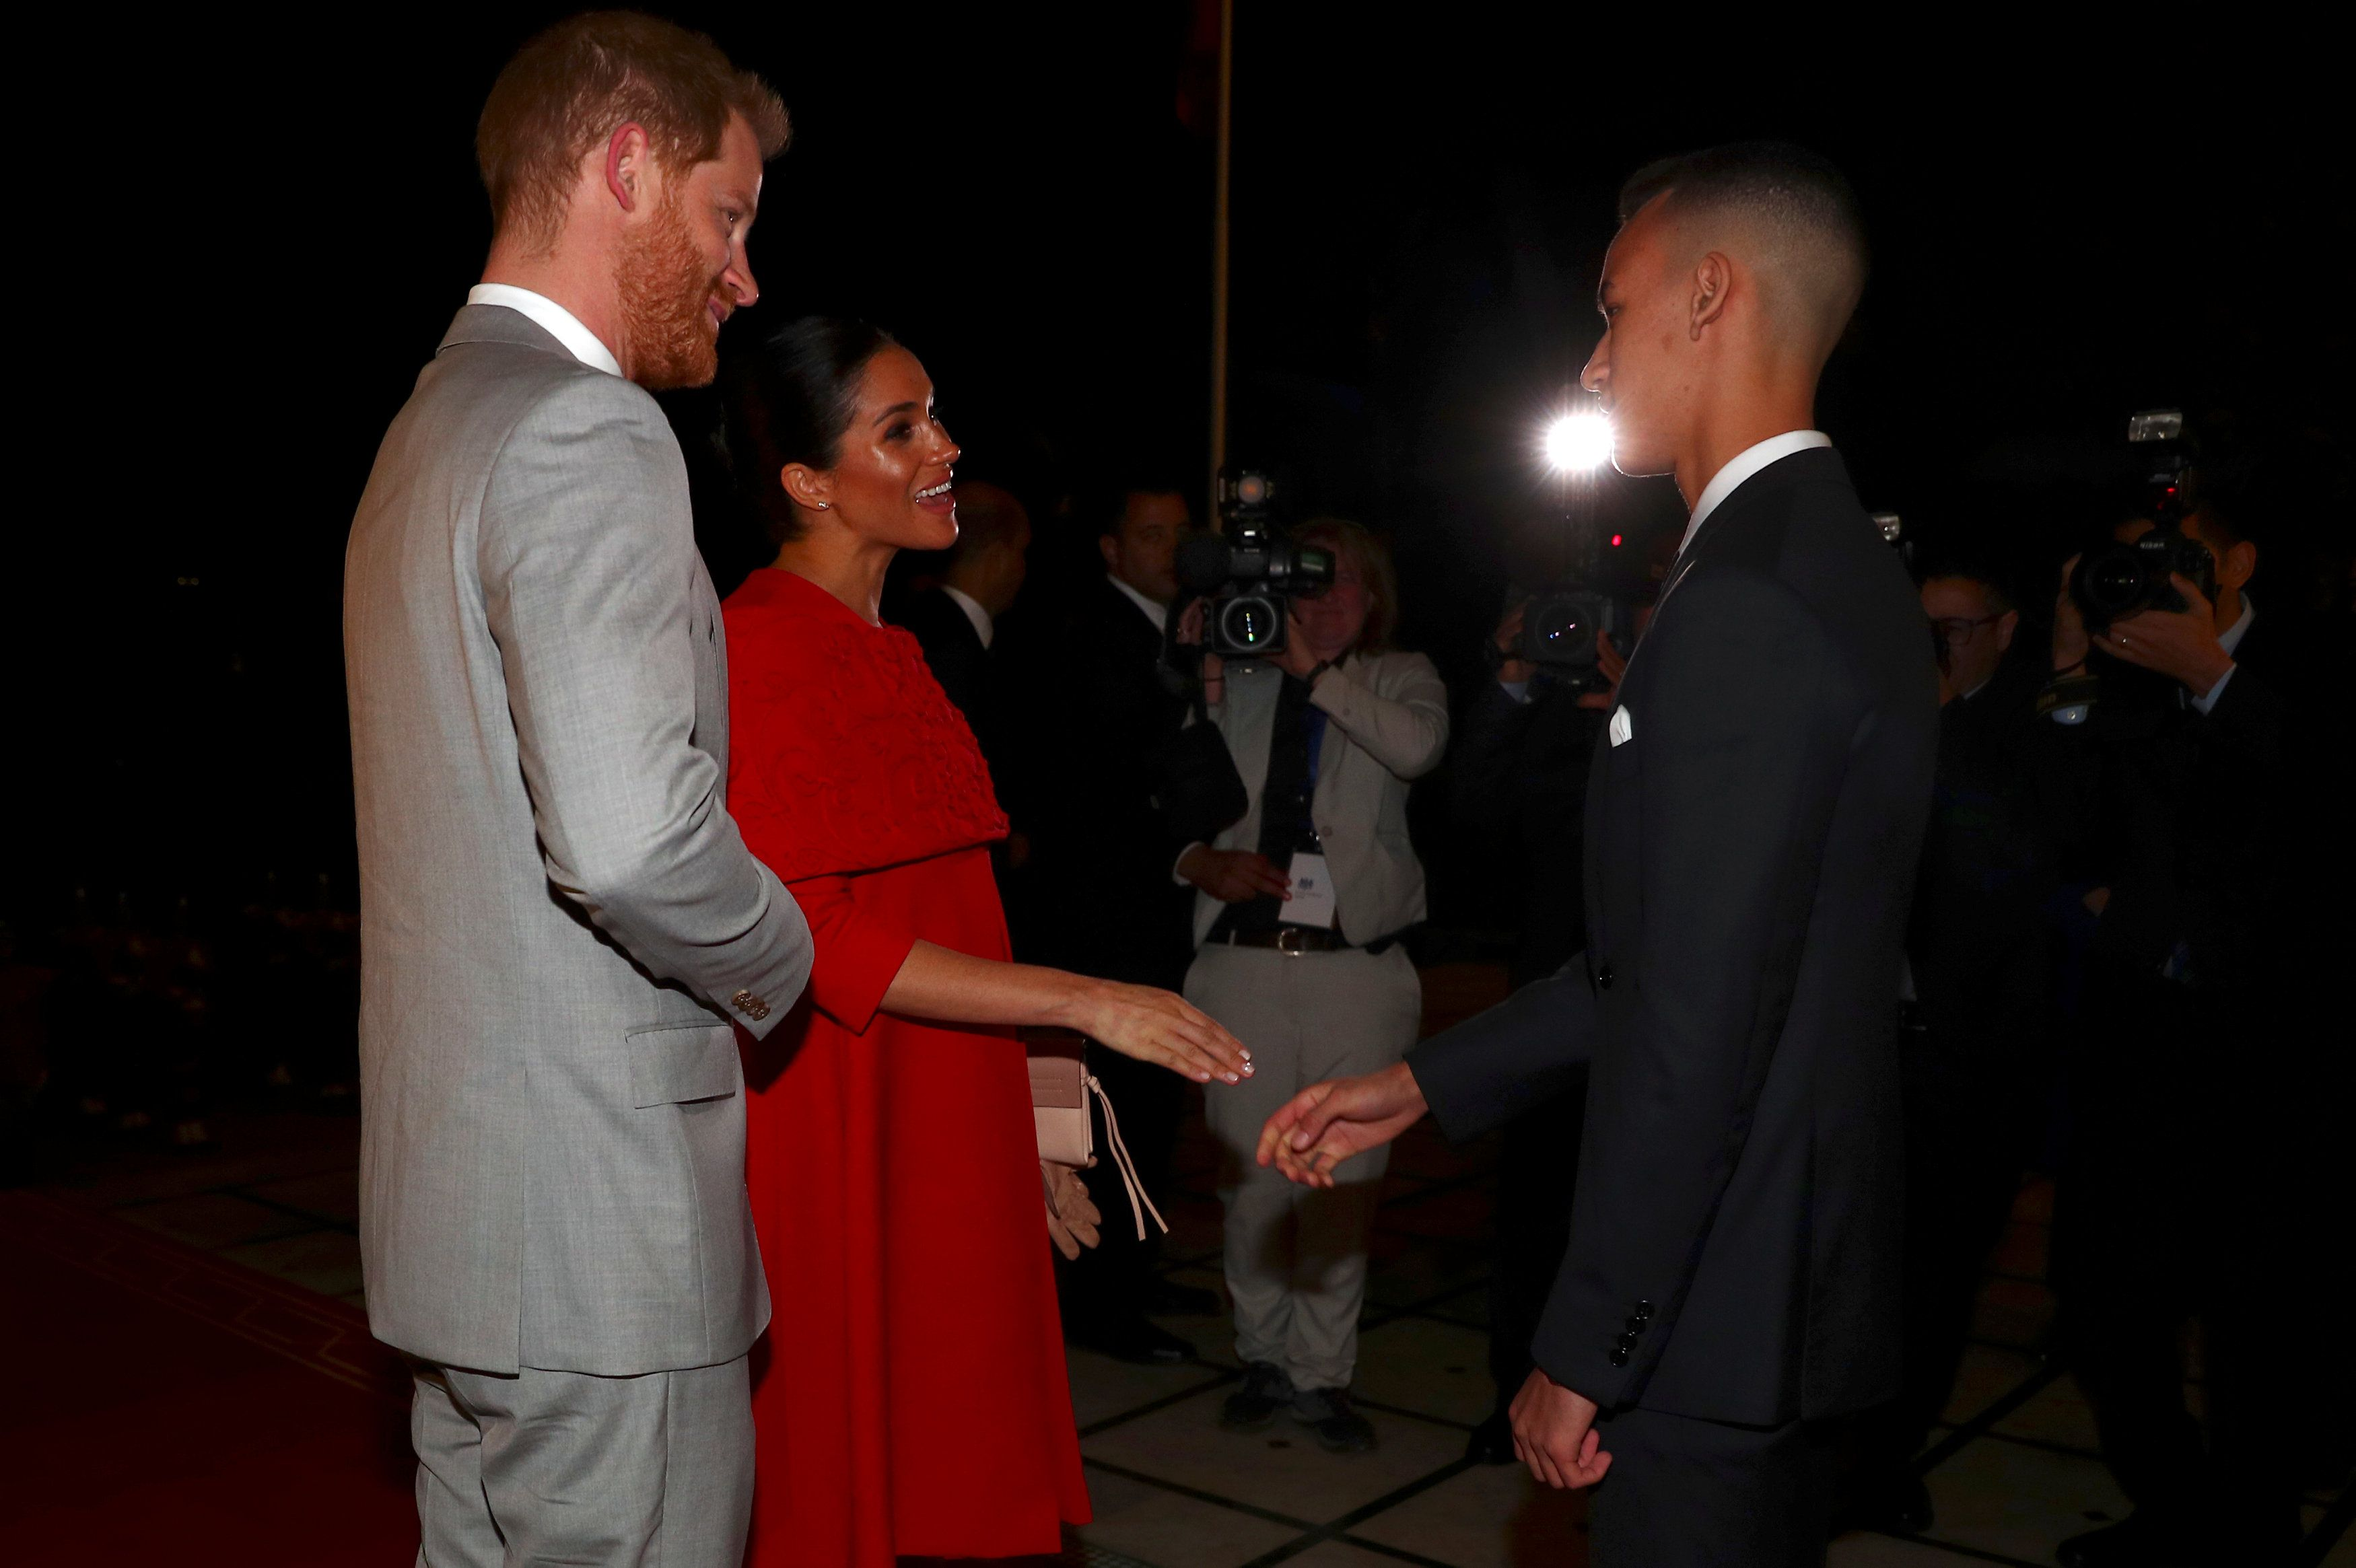 The Duke and Duchess of Sussex visit Morocco